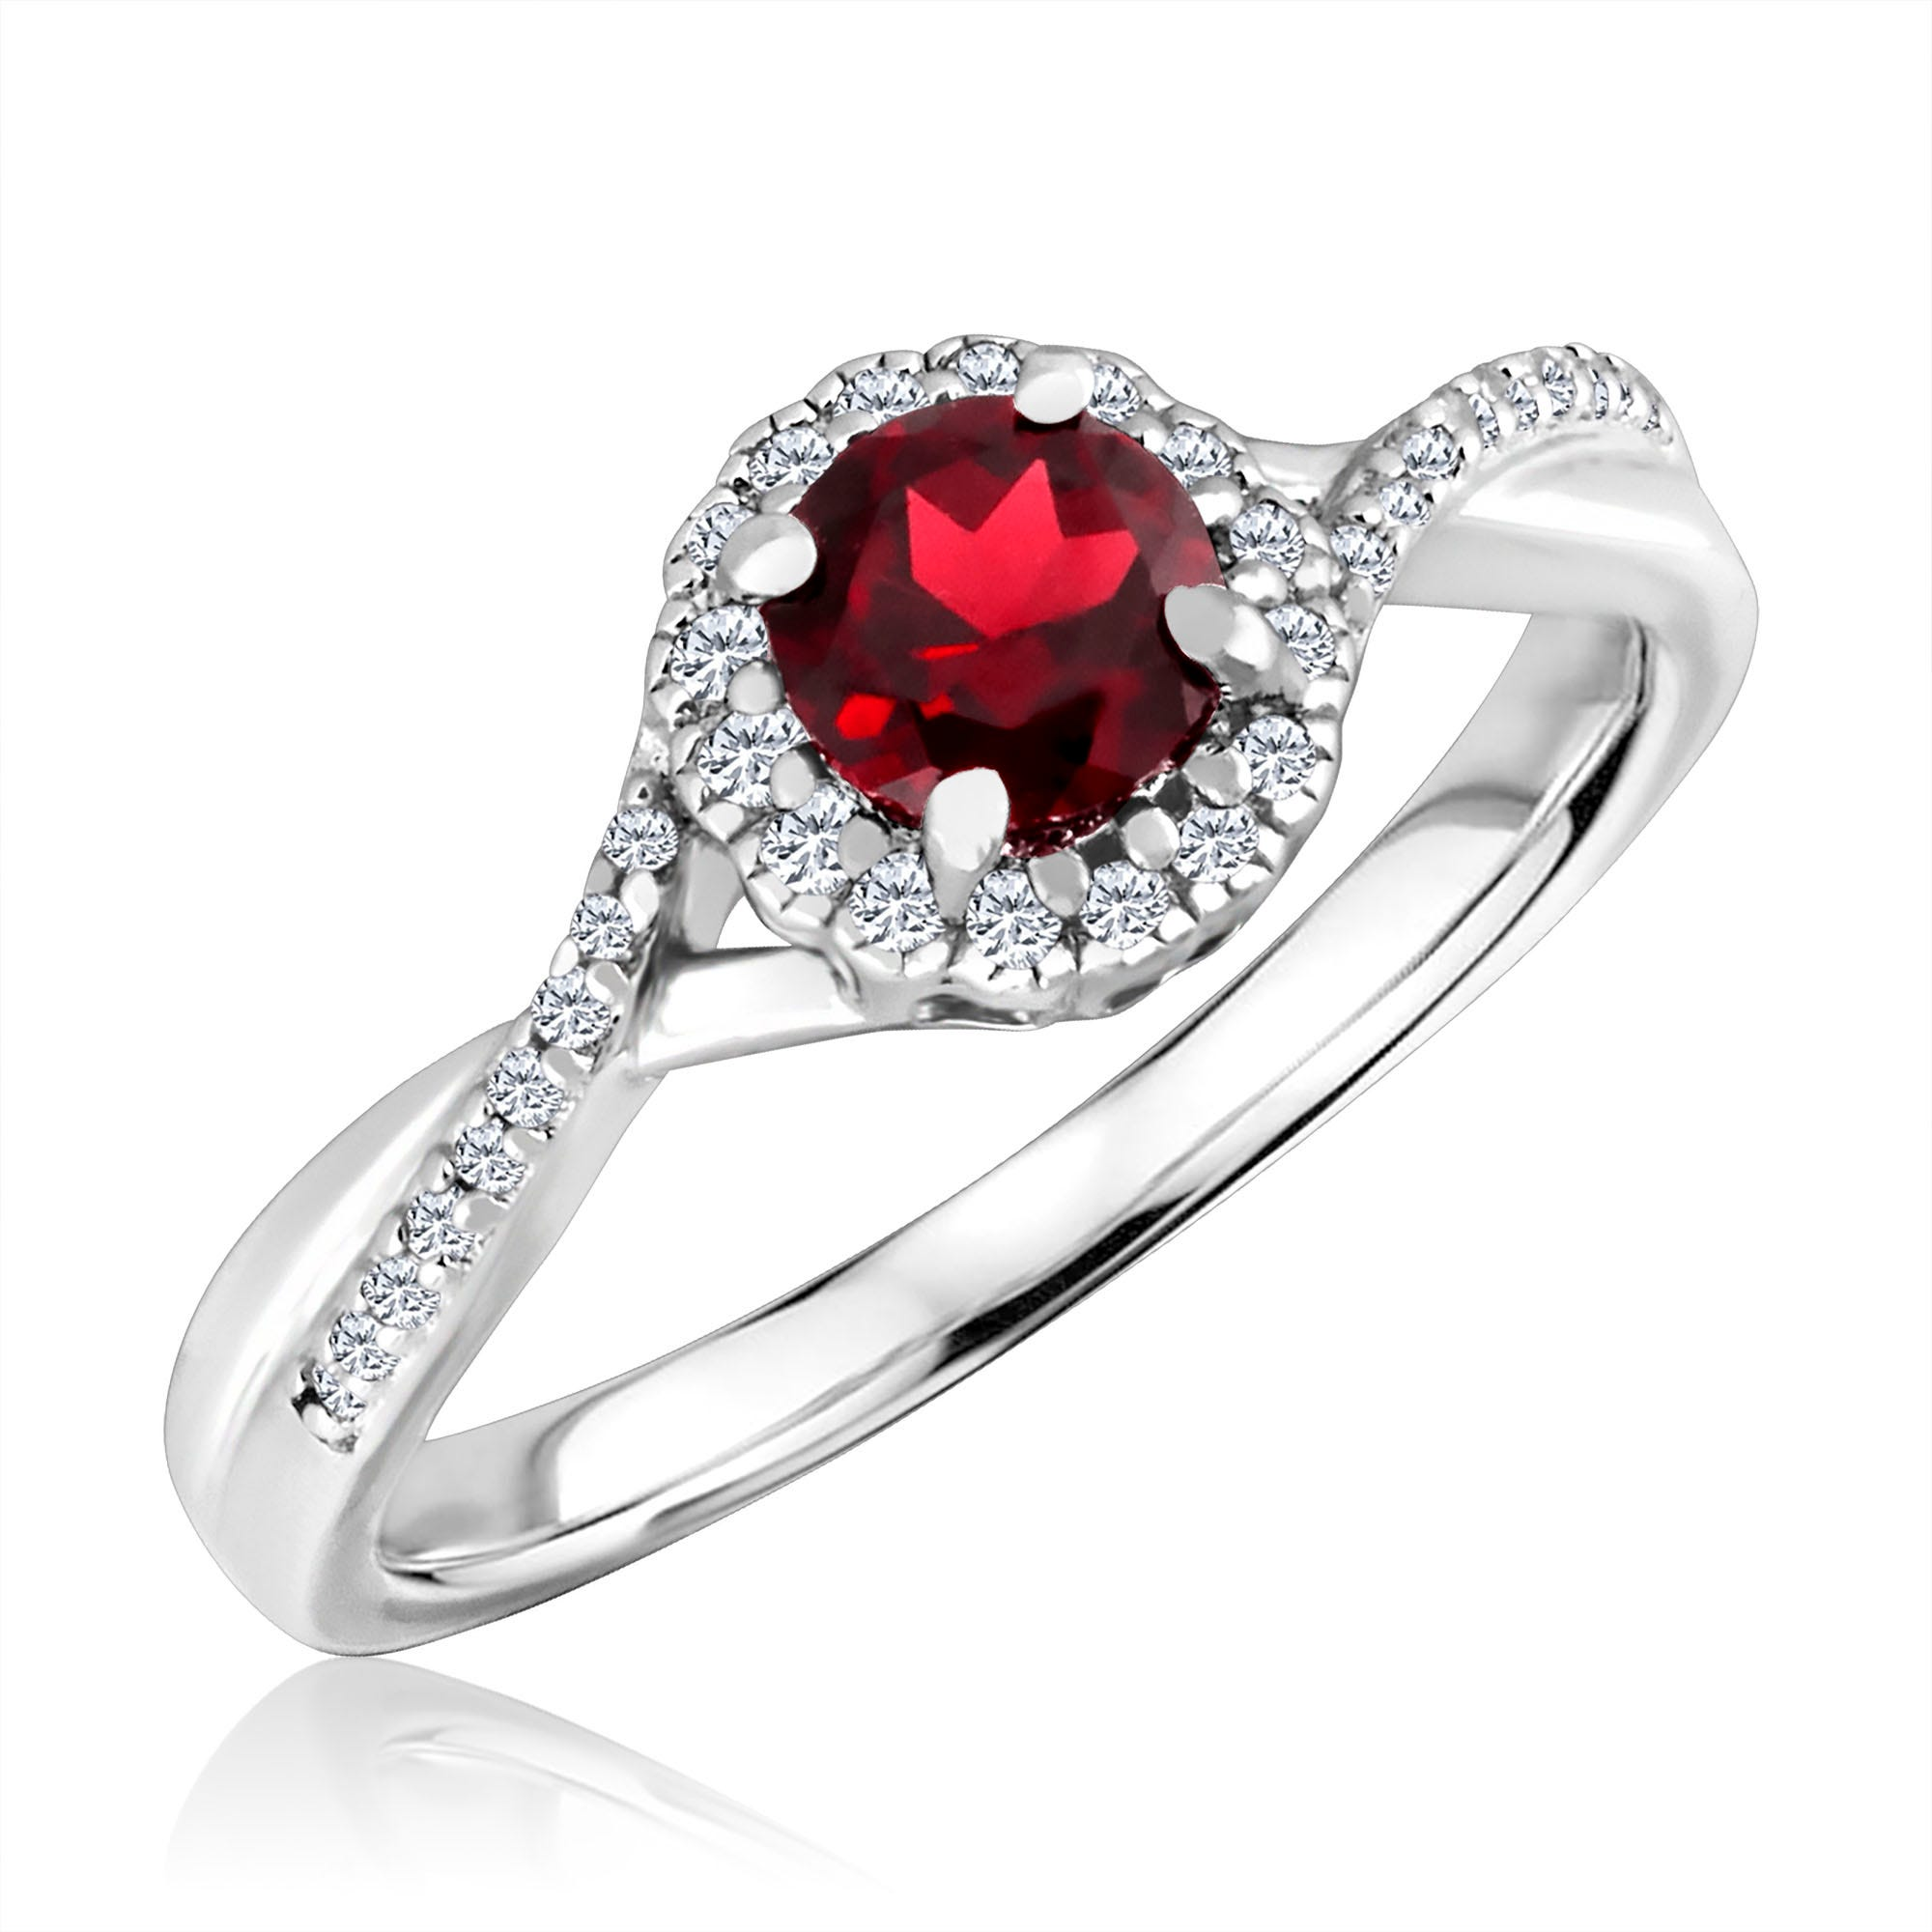 Round-Cut Garnet & Diamond Infinity Ring in Sterling Silver